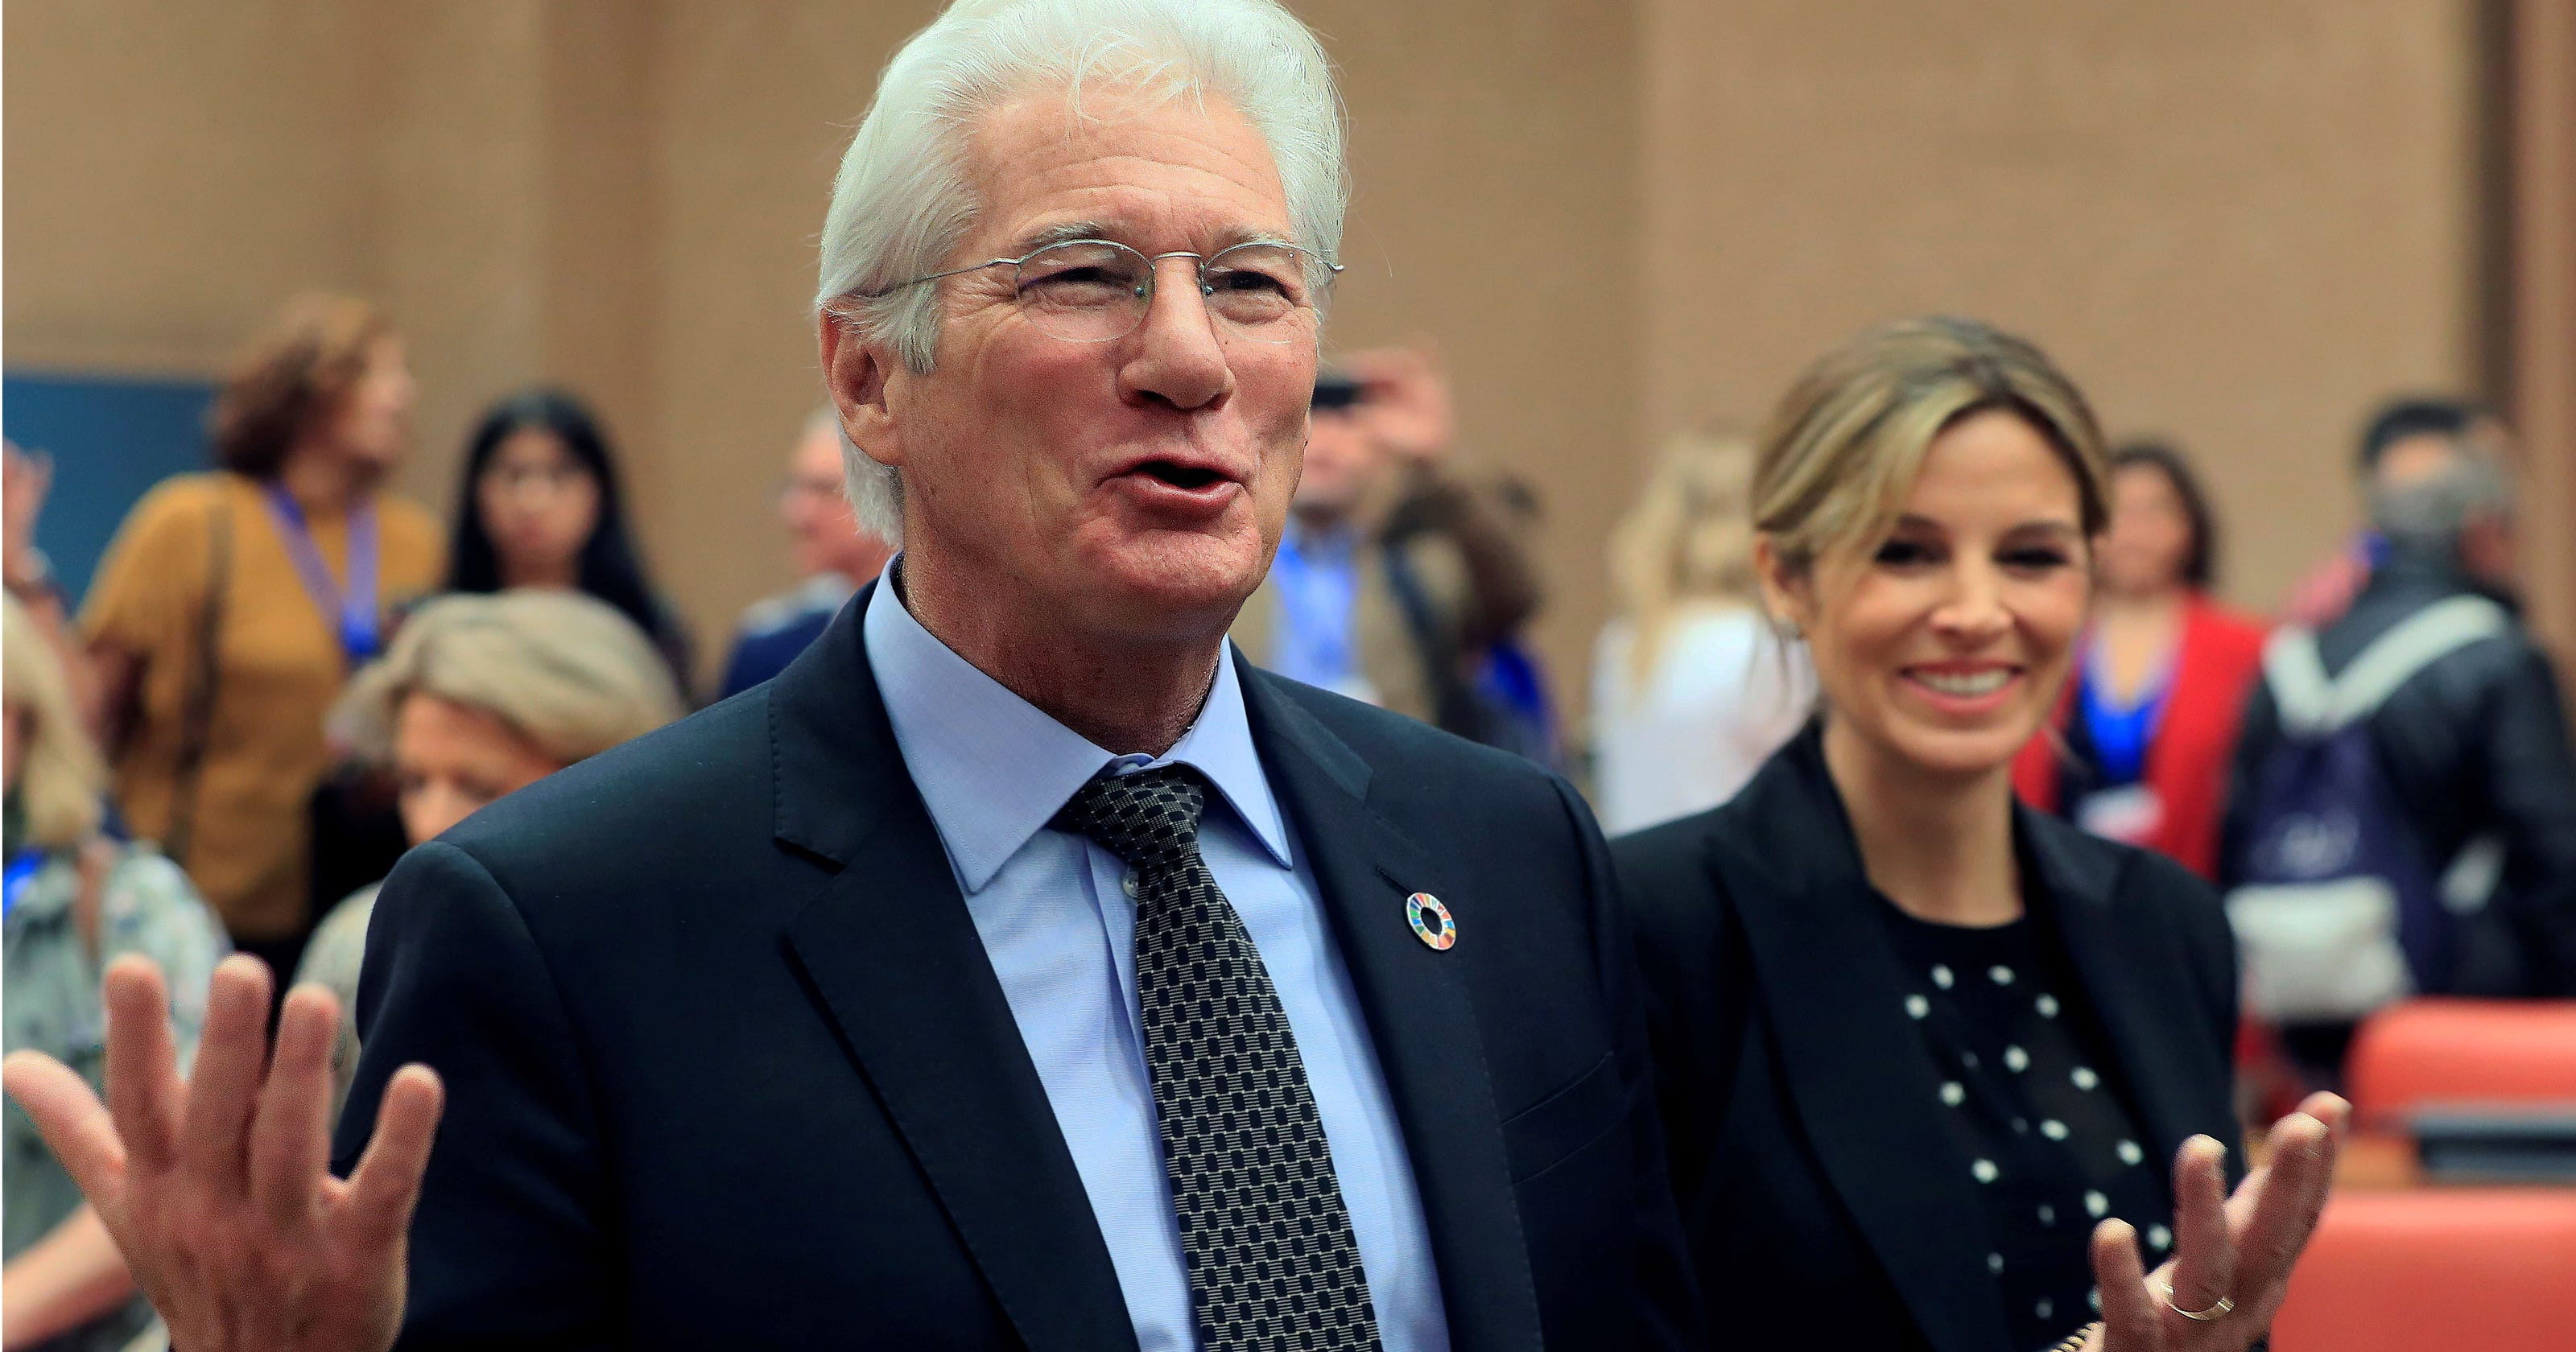 Richard Gere Welcomes Baby Boy At Age 69 With Wife